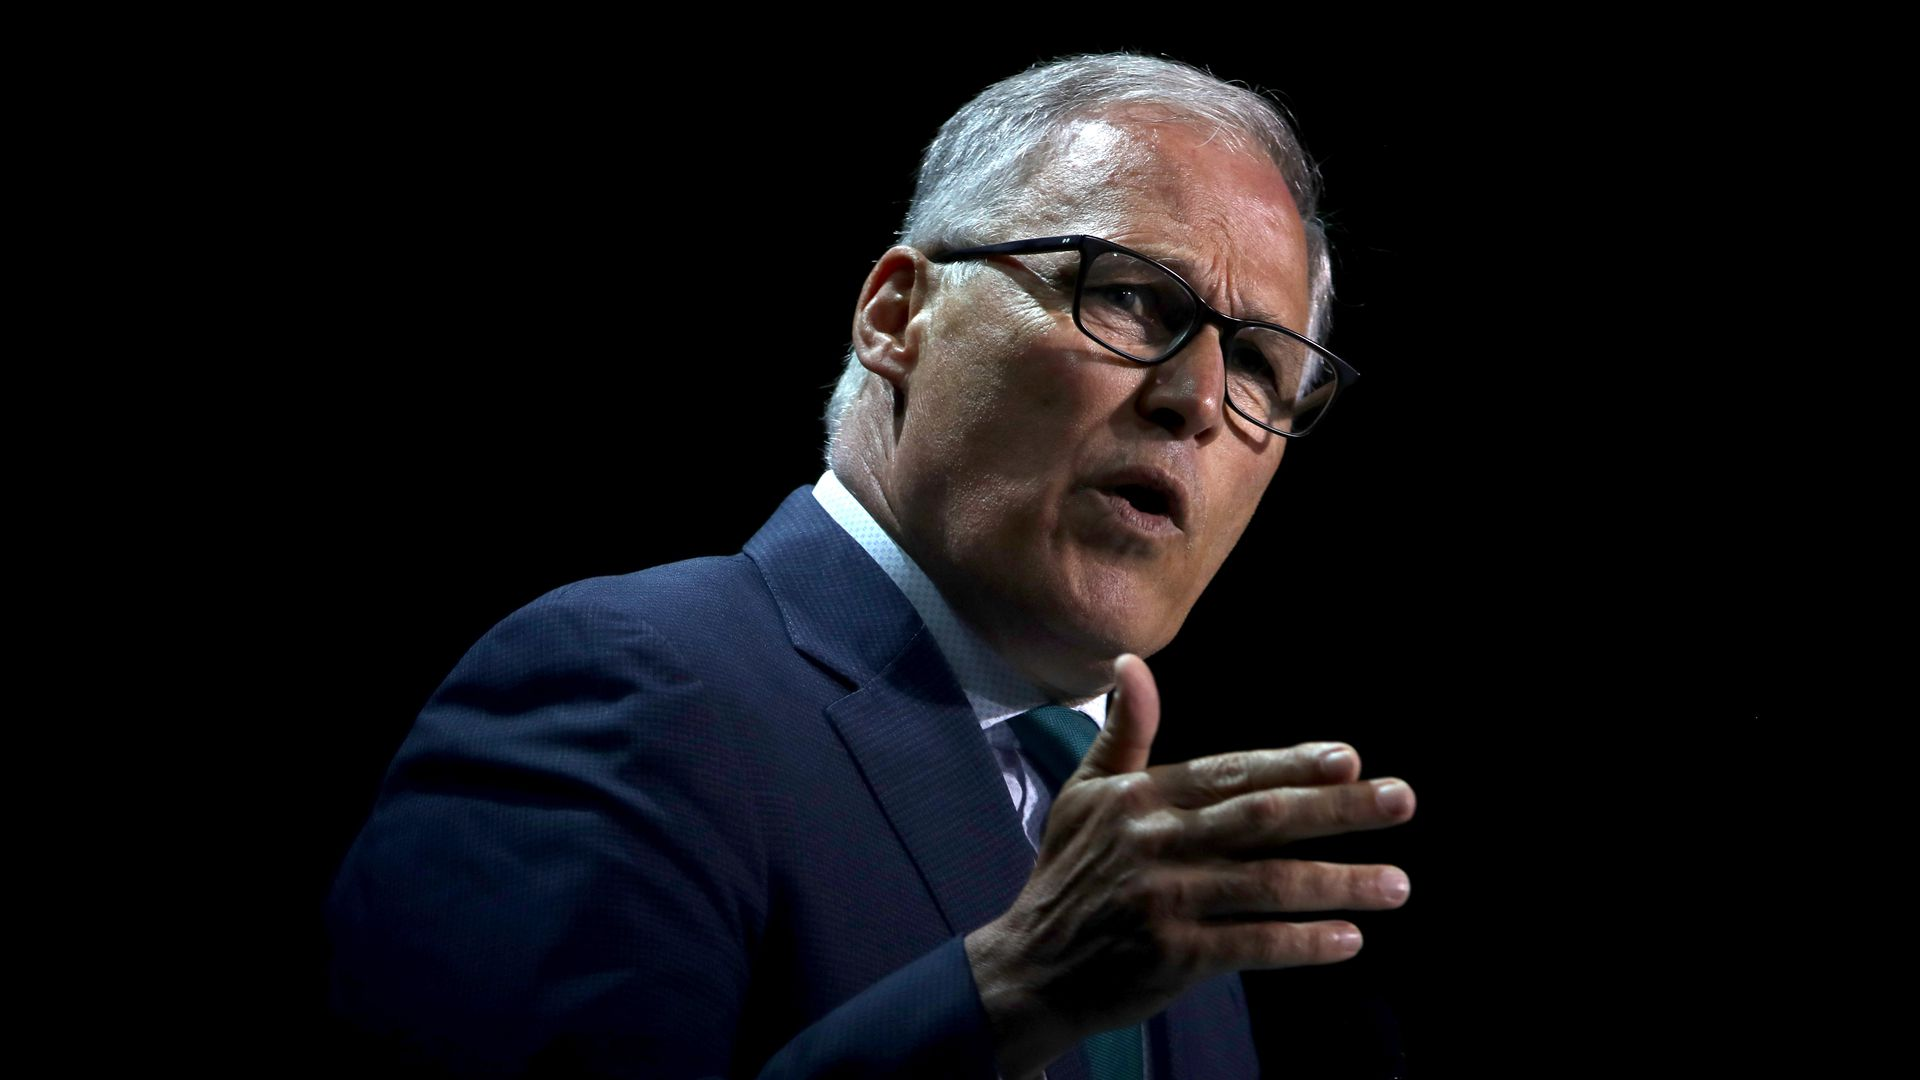 Washington Governor and presidential candidate Jay Inslee